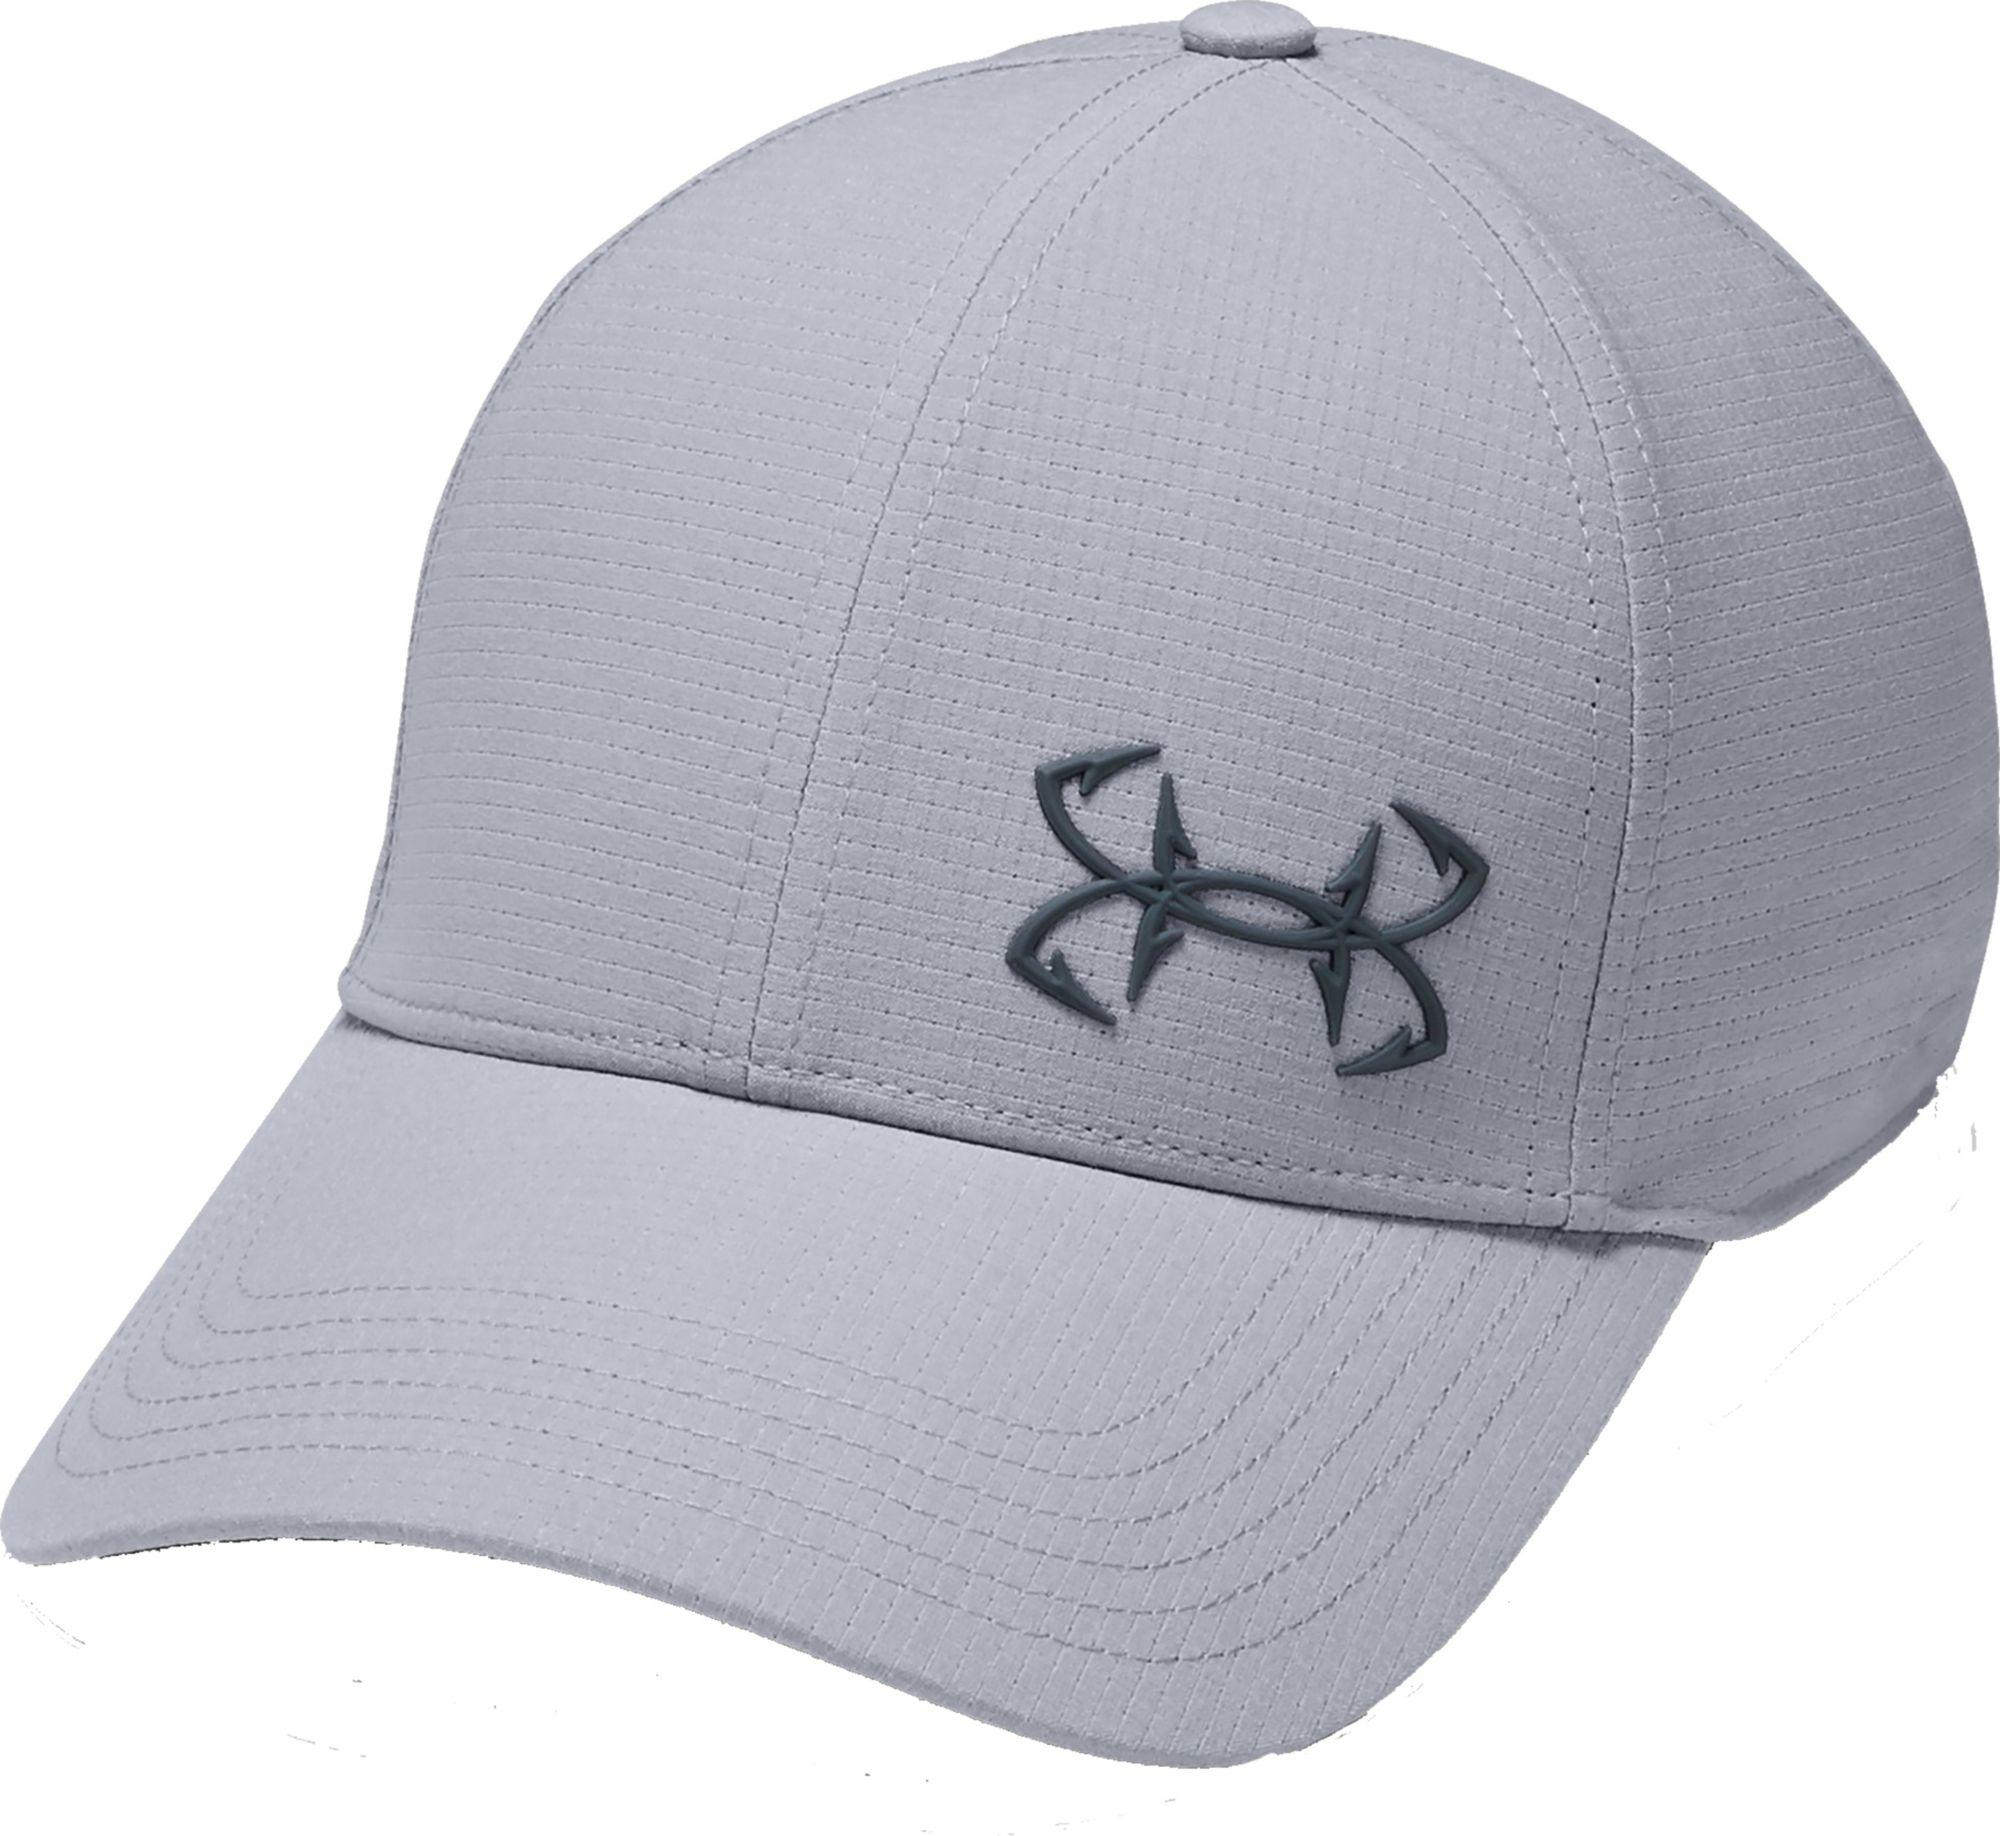 6d4388b0cb0 Lyst - Under Armour Coolswitch Armourvent Fishing Hat in Gray for Men